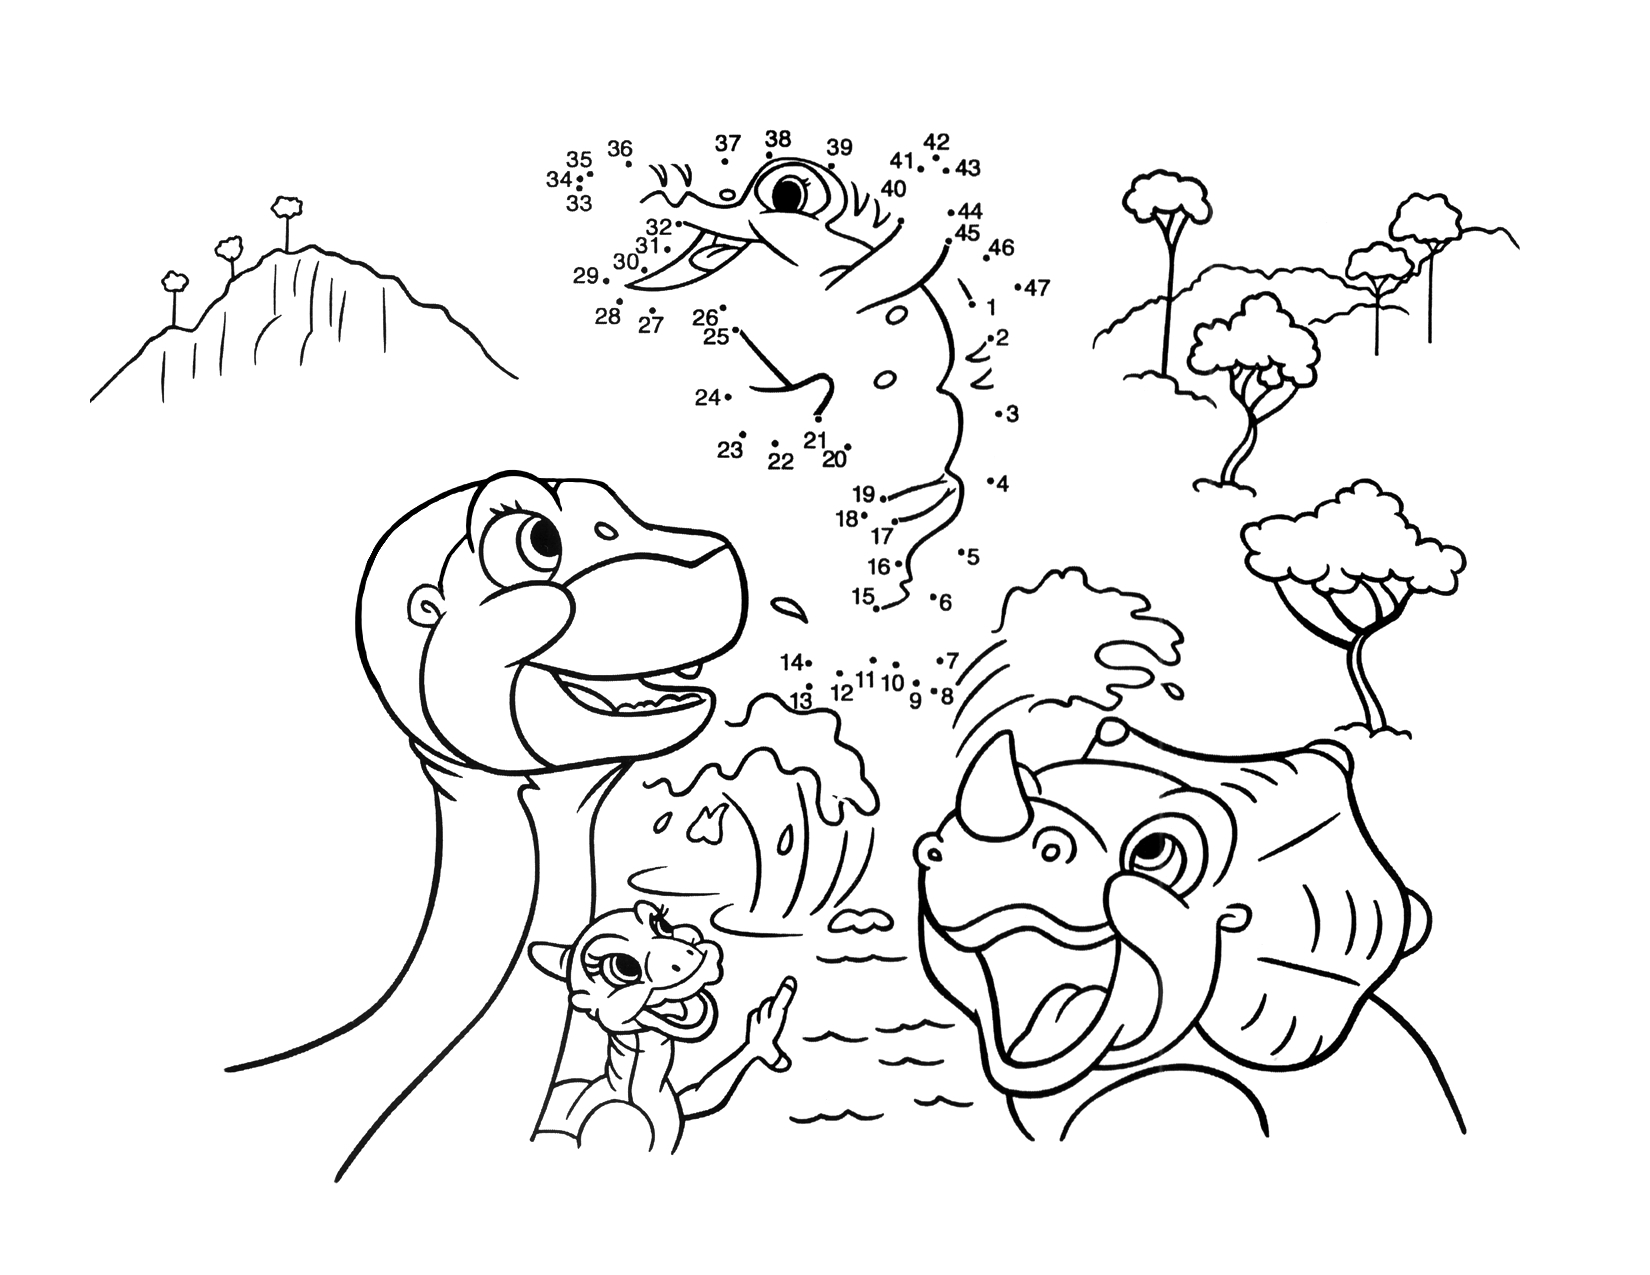 Image Coloring page 3 movie 9